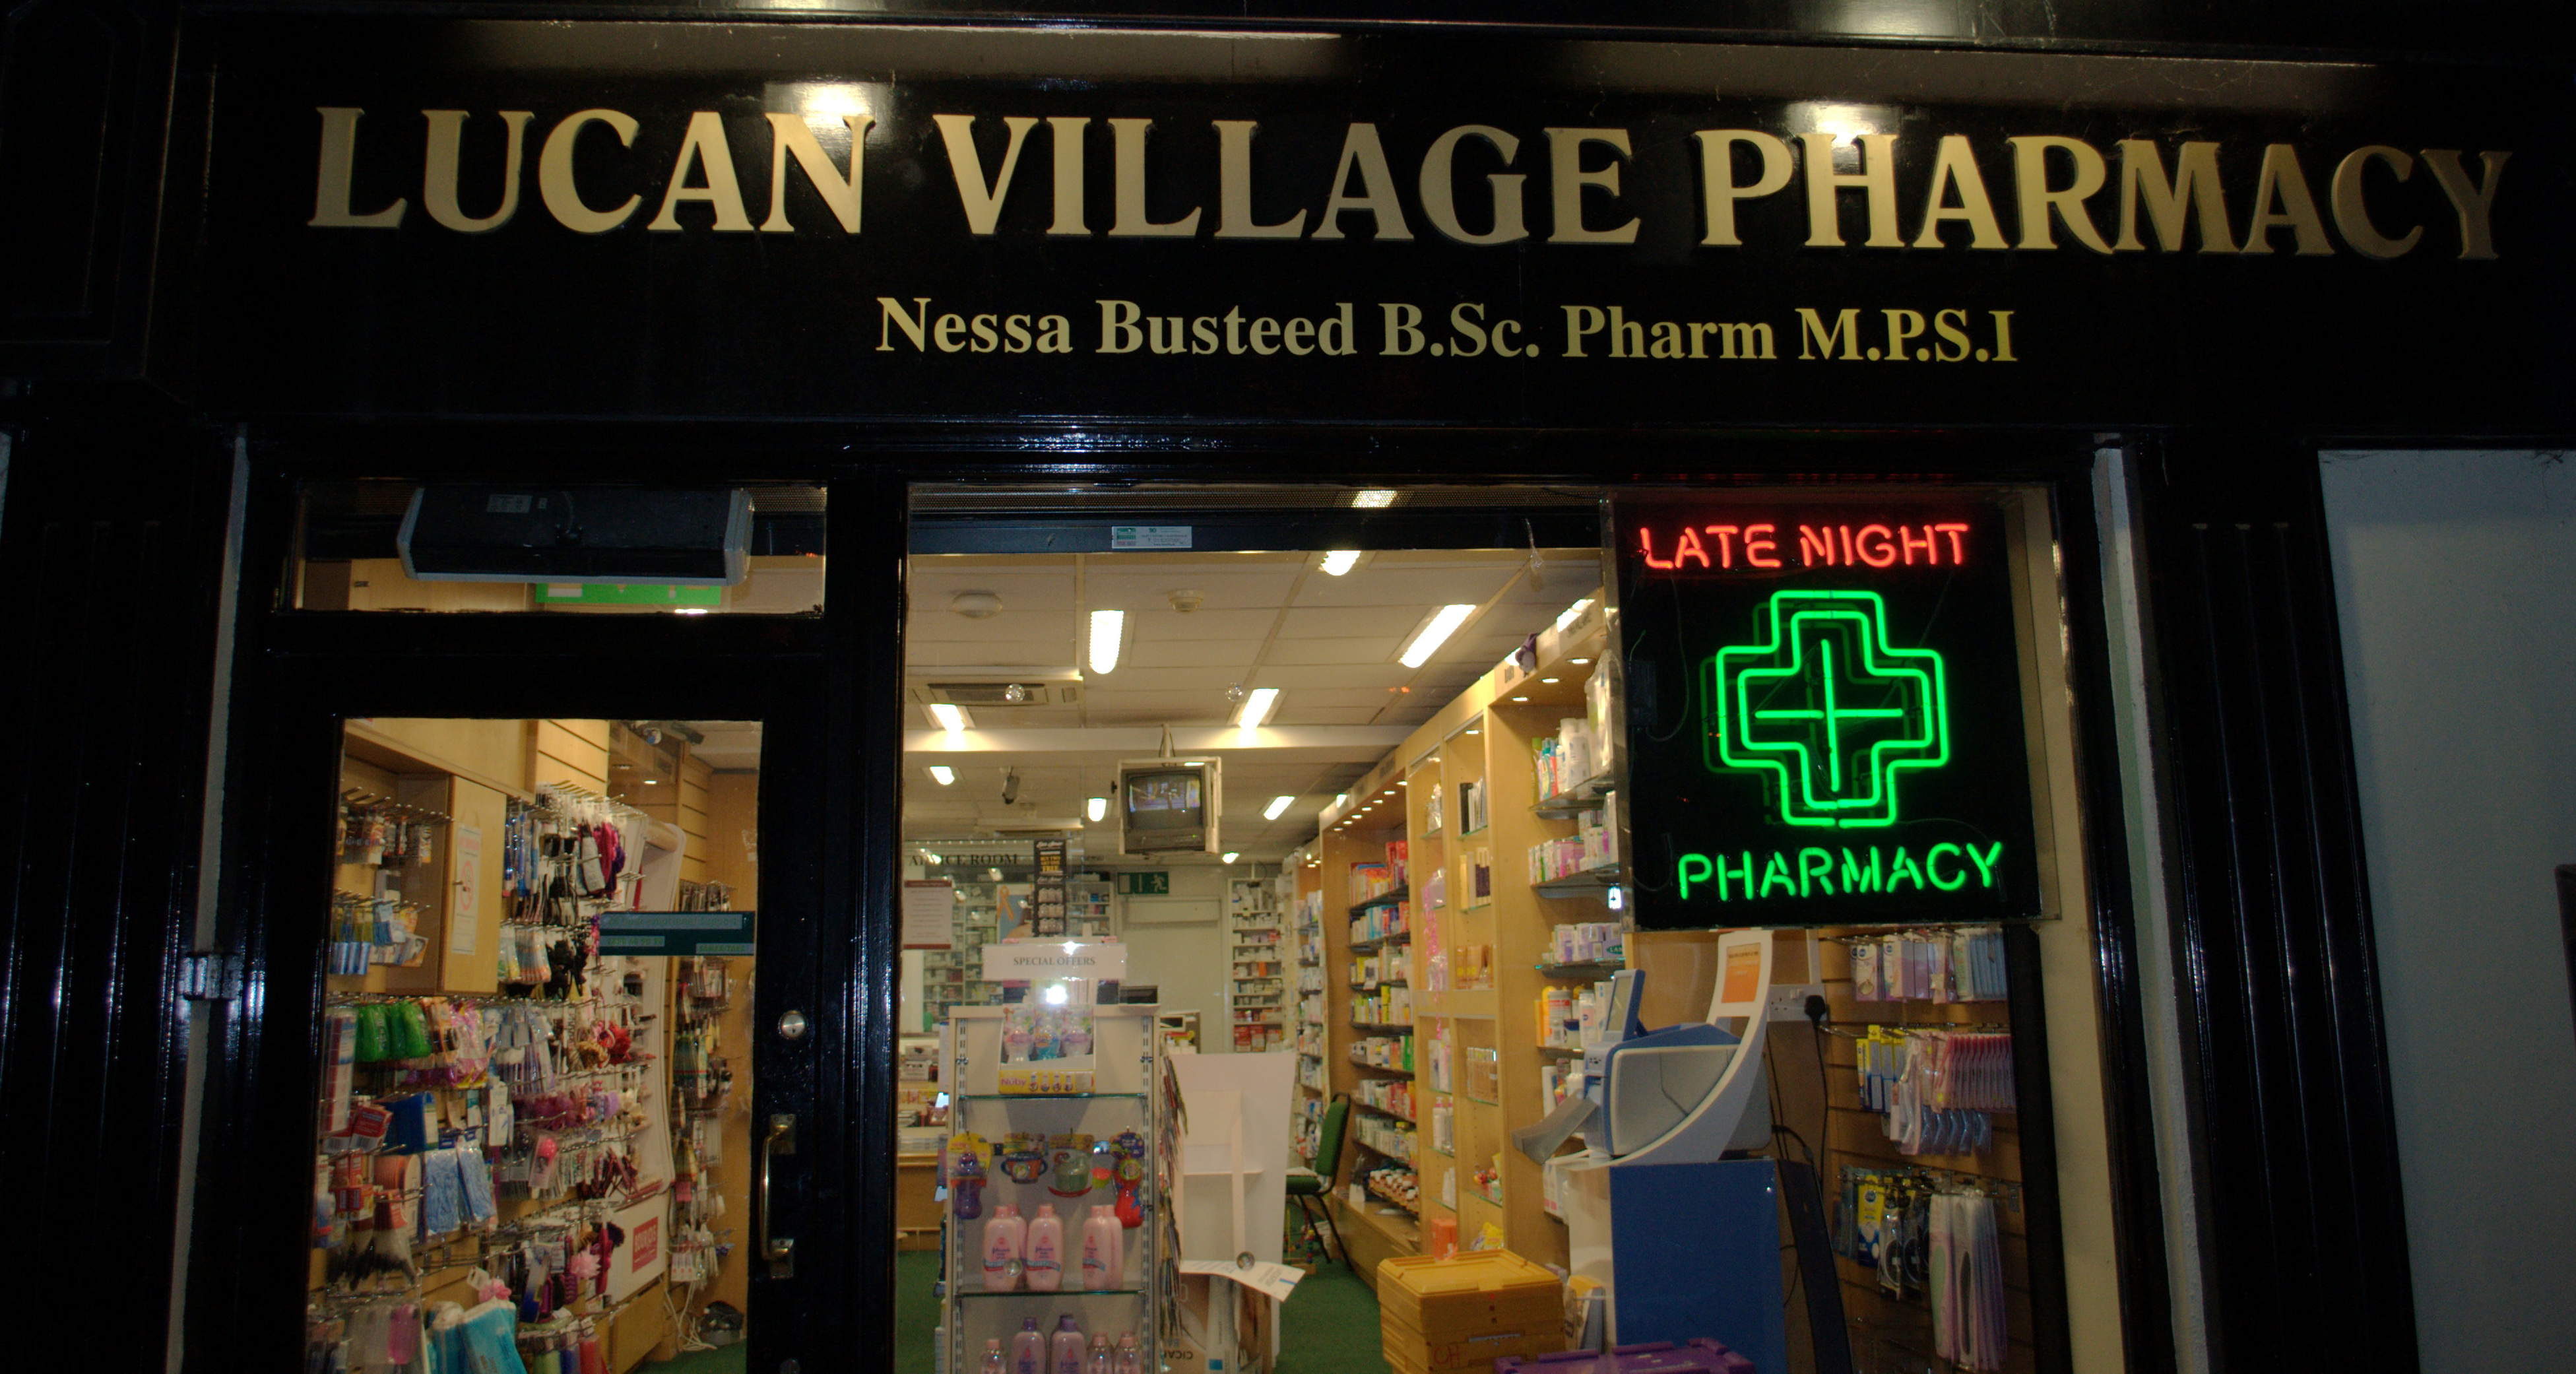 lucanvillagepharmacy.jpg